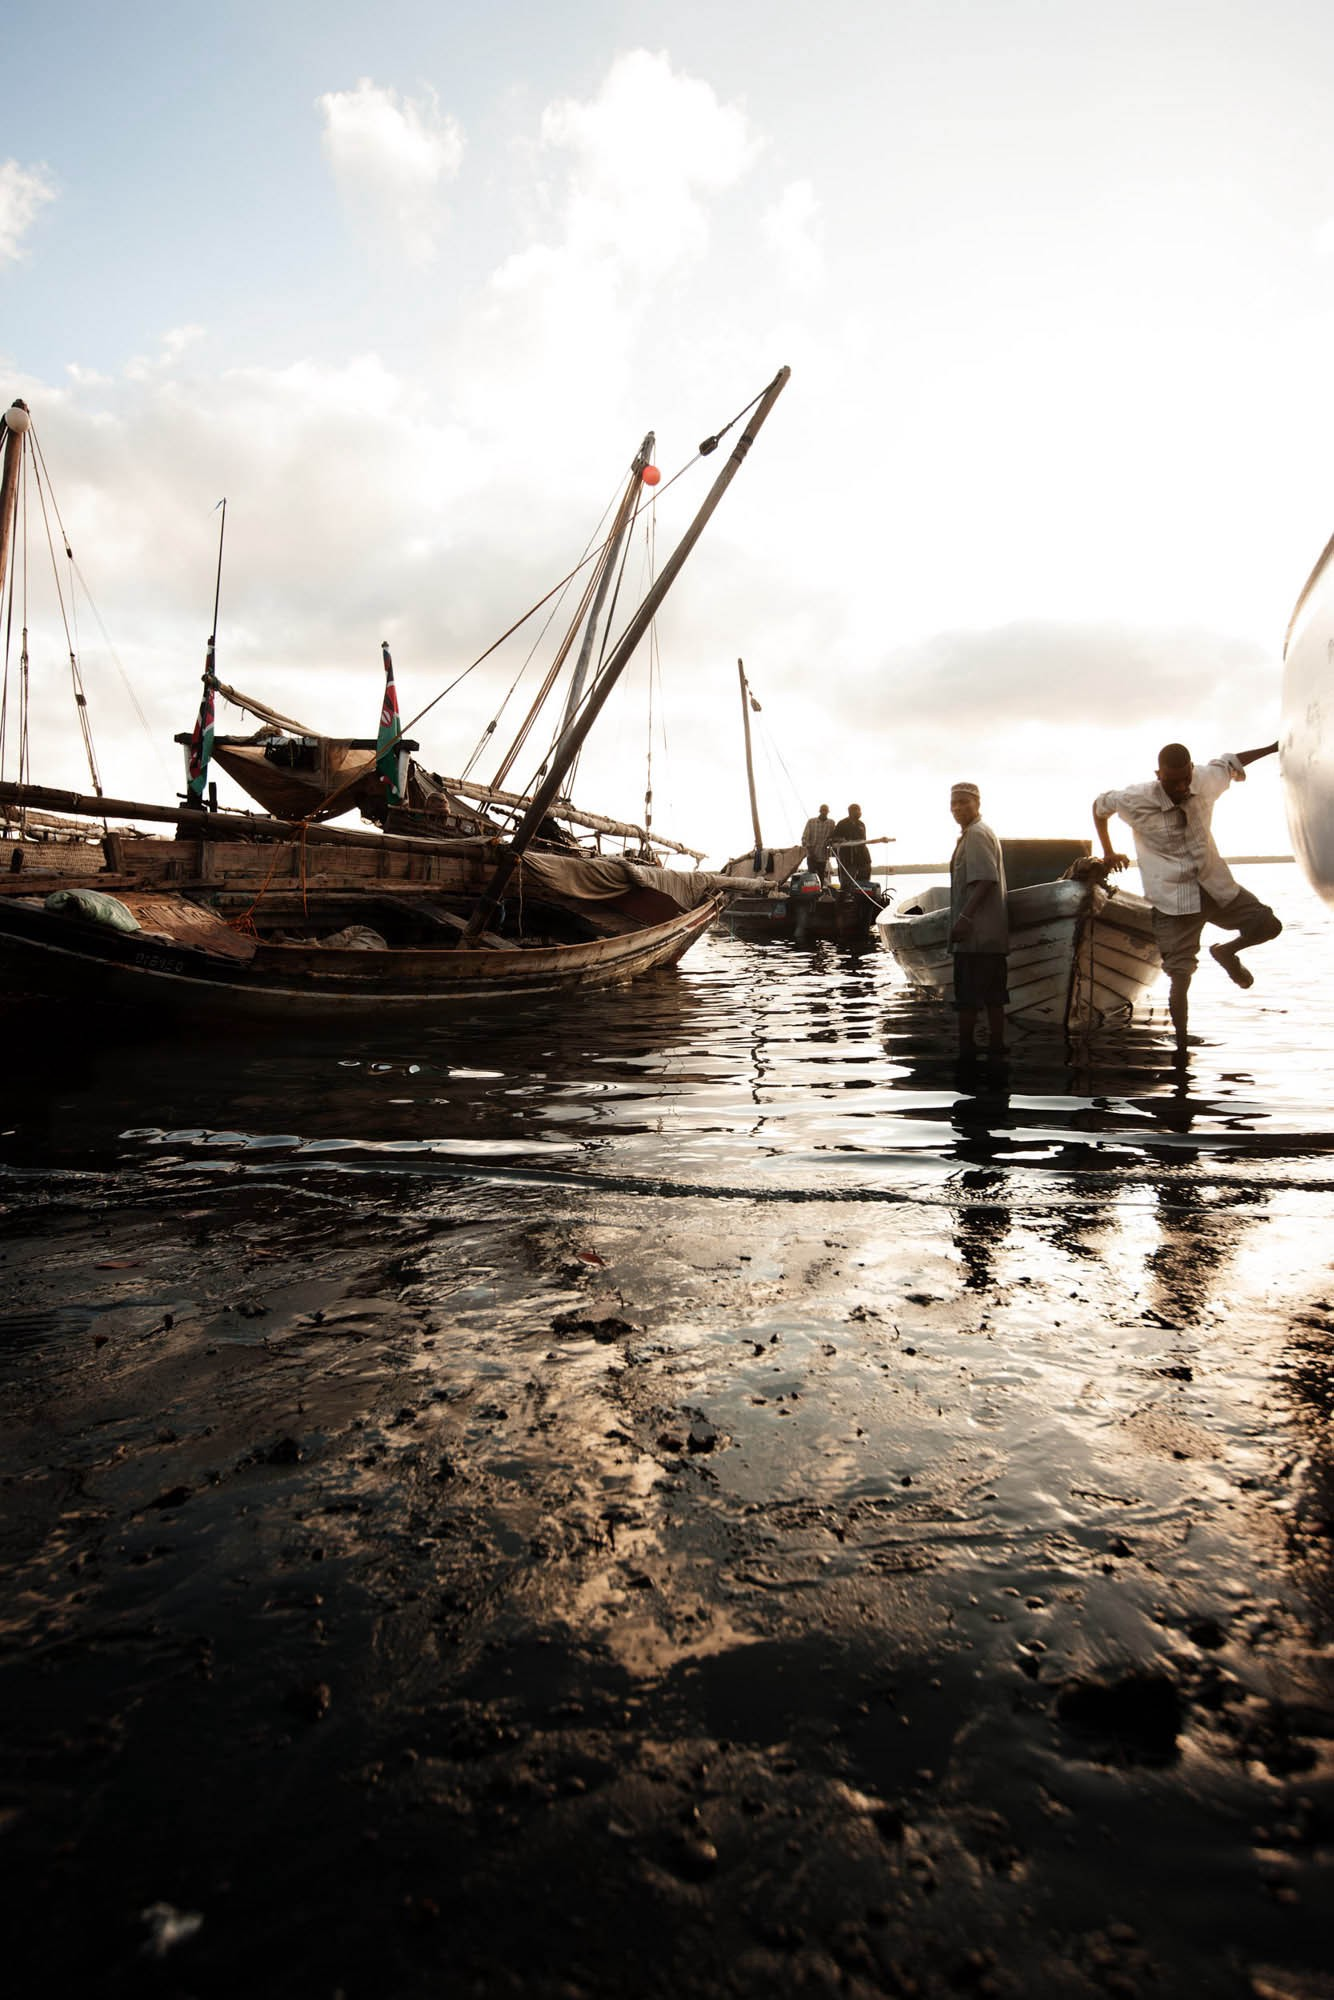 During low tide, fishing dhows keel over in the mud of the Lamu estuary. | © James Fisher 2017 All Rights Reserved.